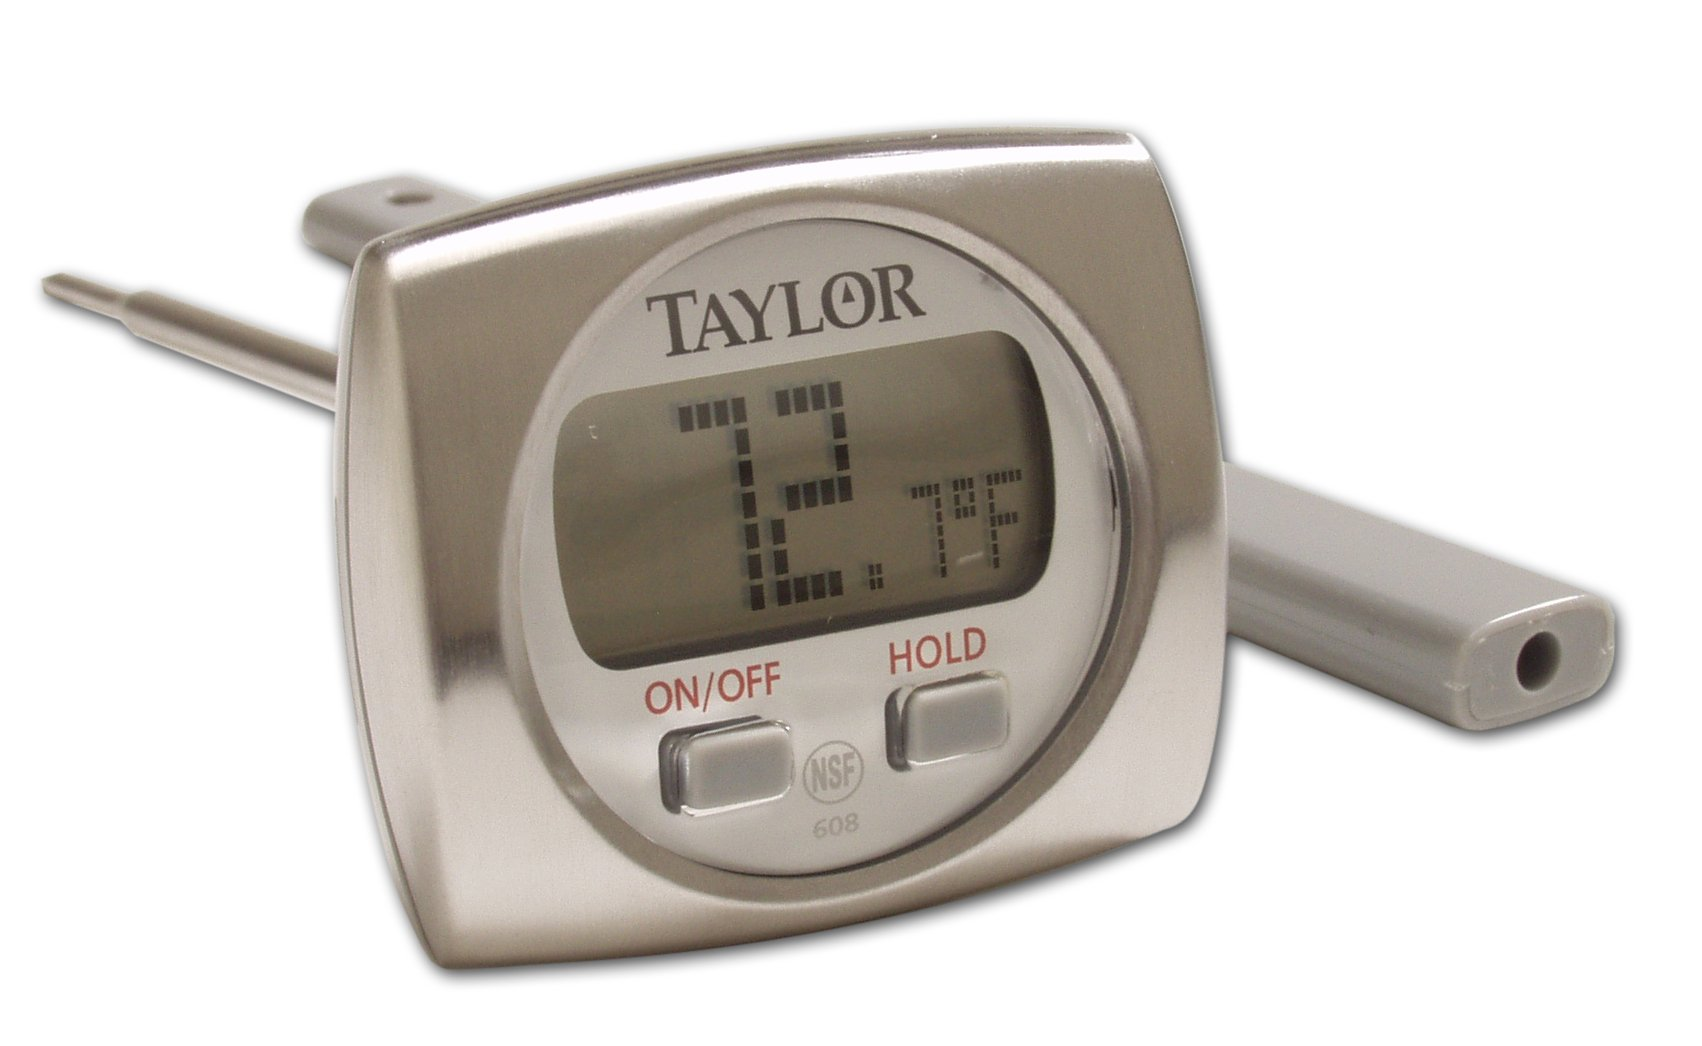 Taylor Precision Products Elite Digital Thermometer